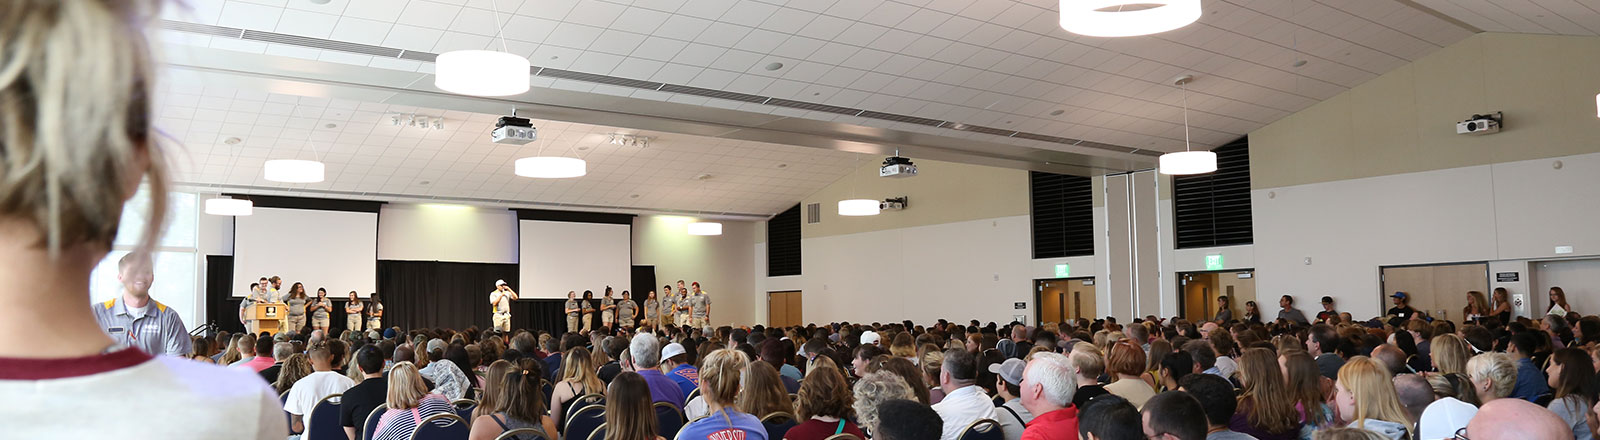 Welcome session at the beginning of a First-Year Orientation